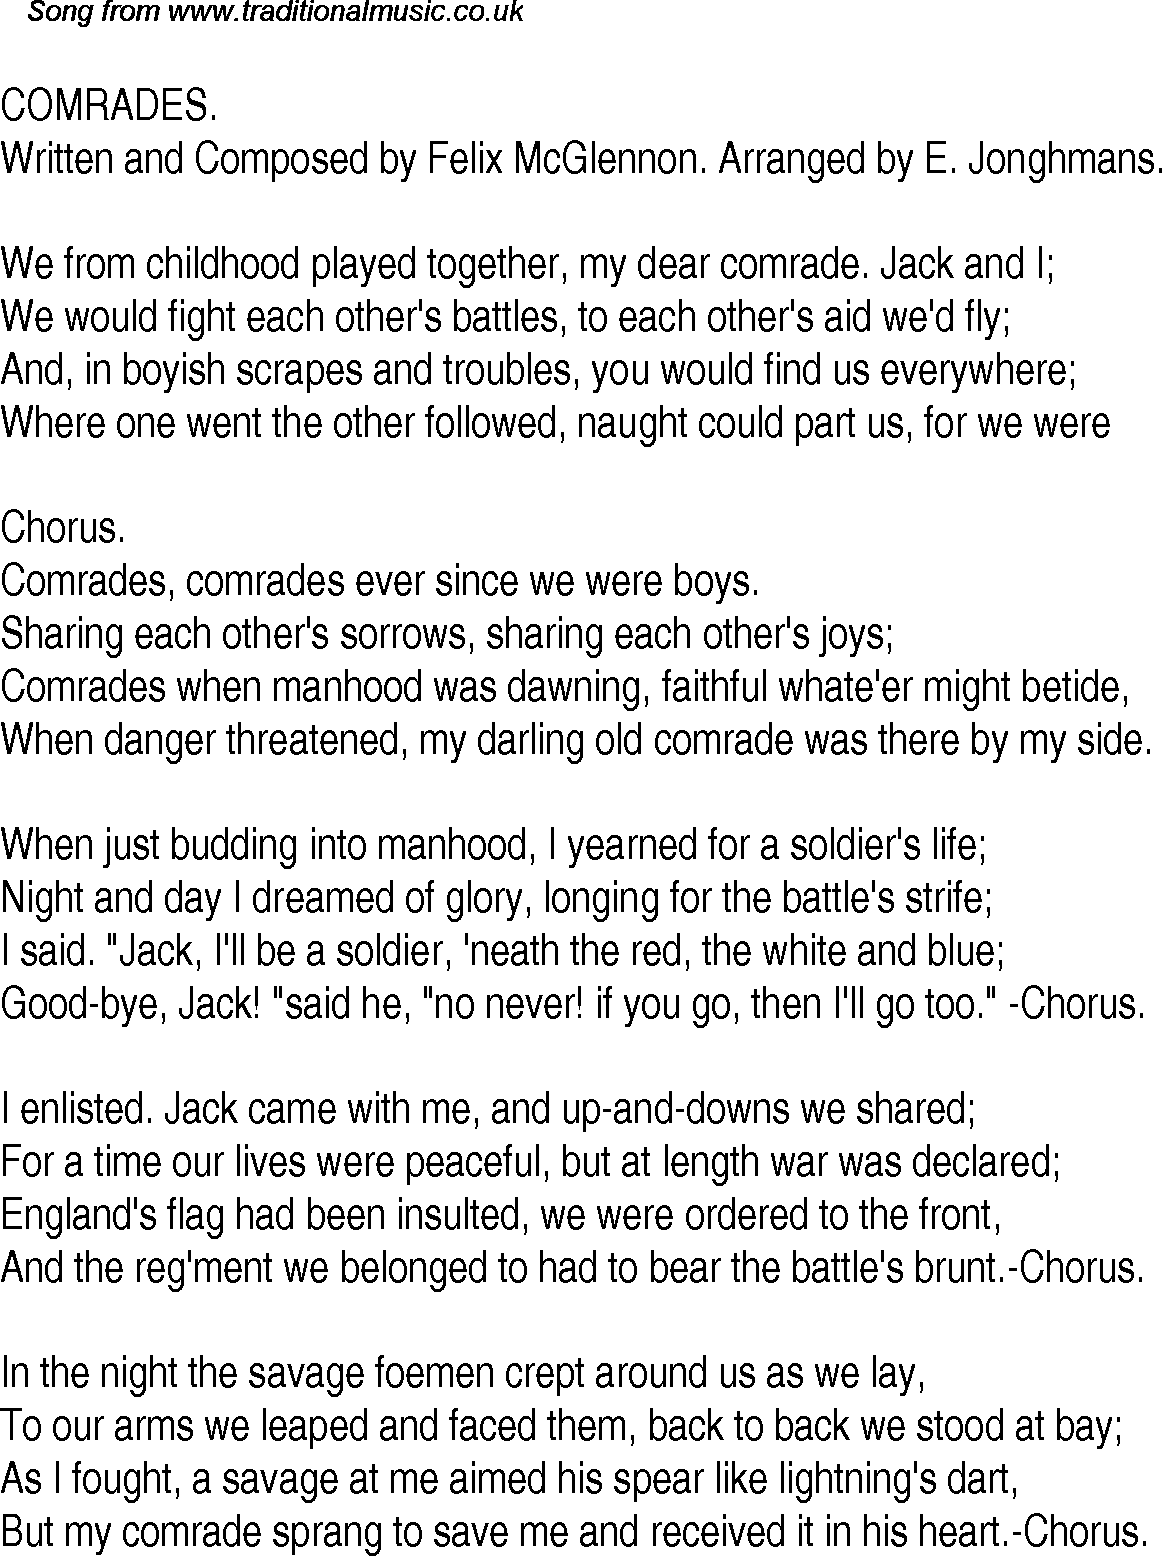 Old Time Song Lyrics for 29 Comrades